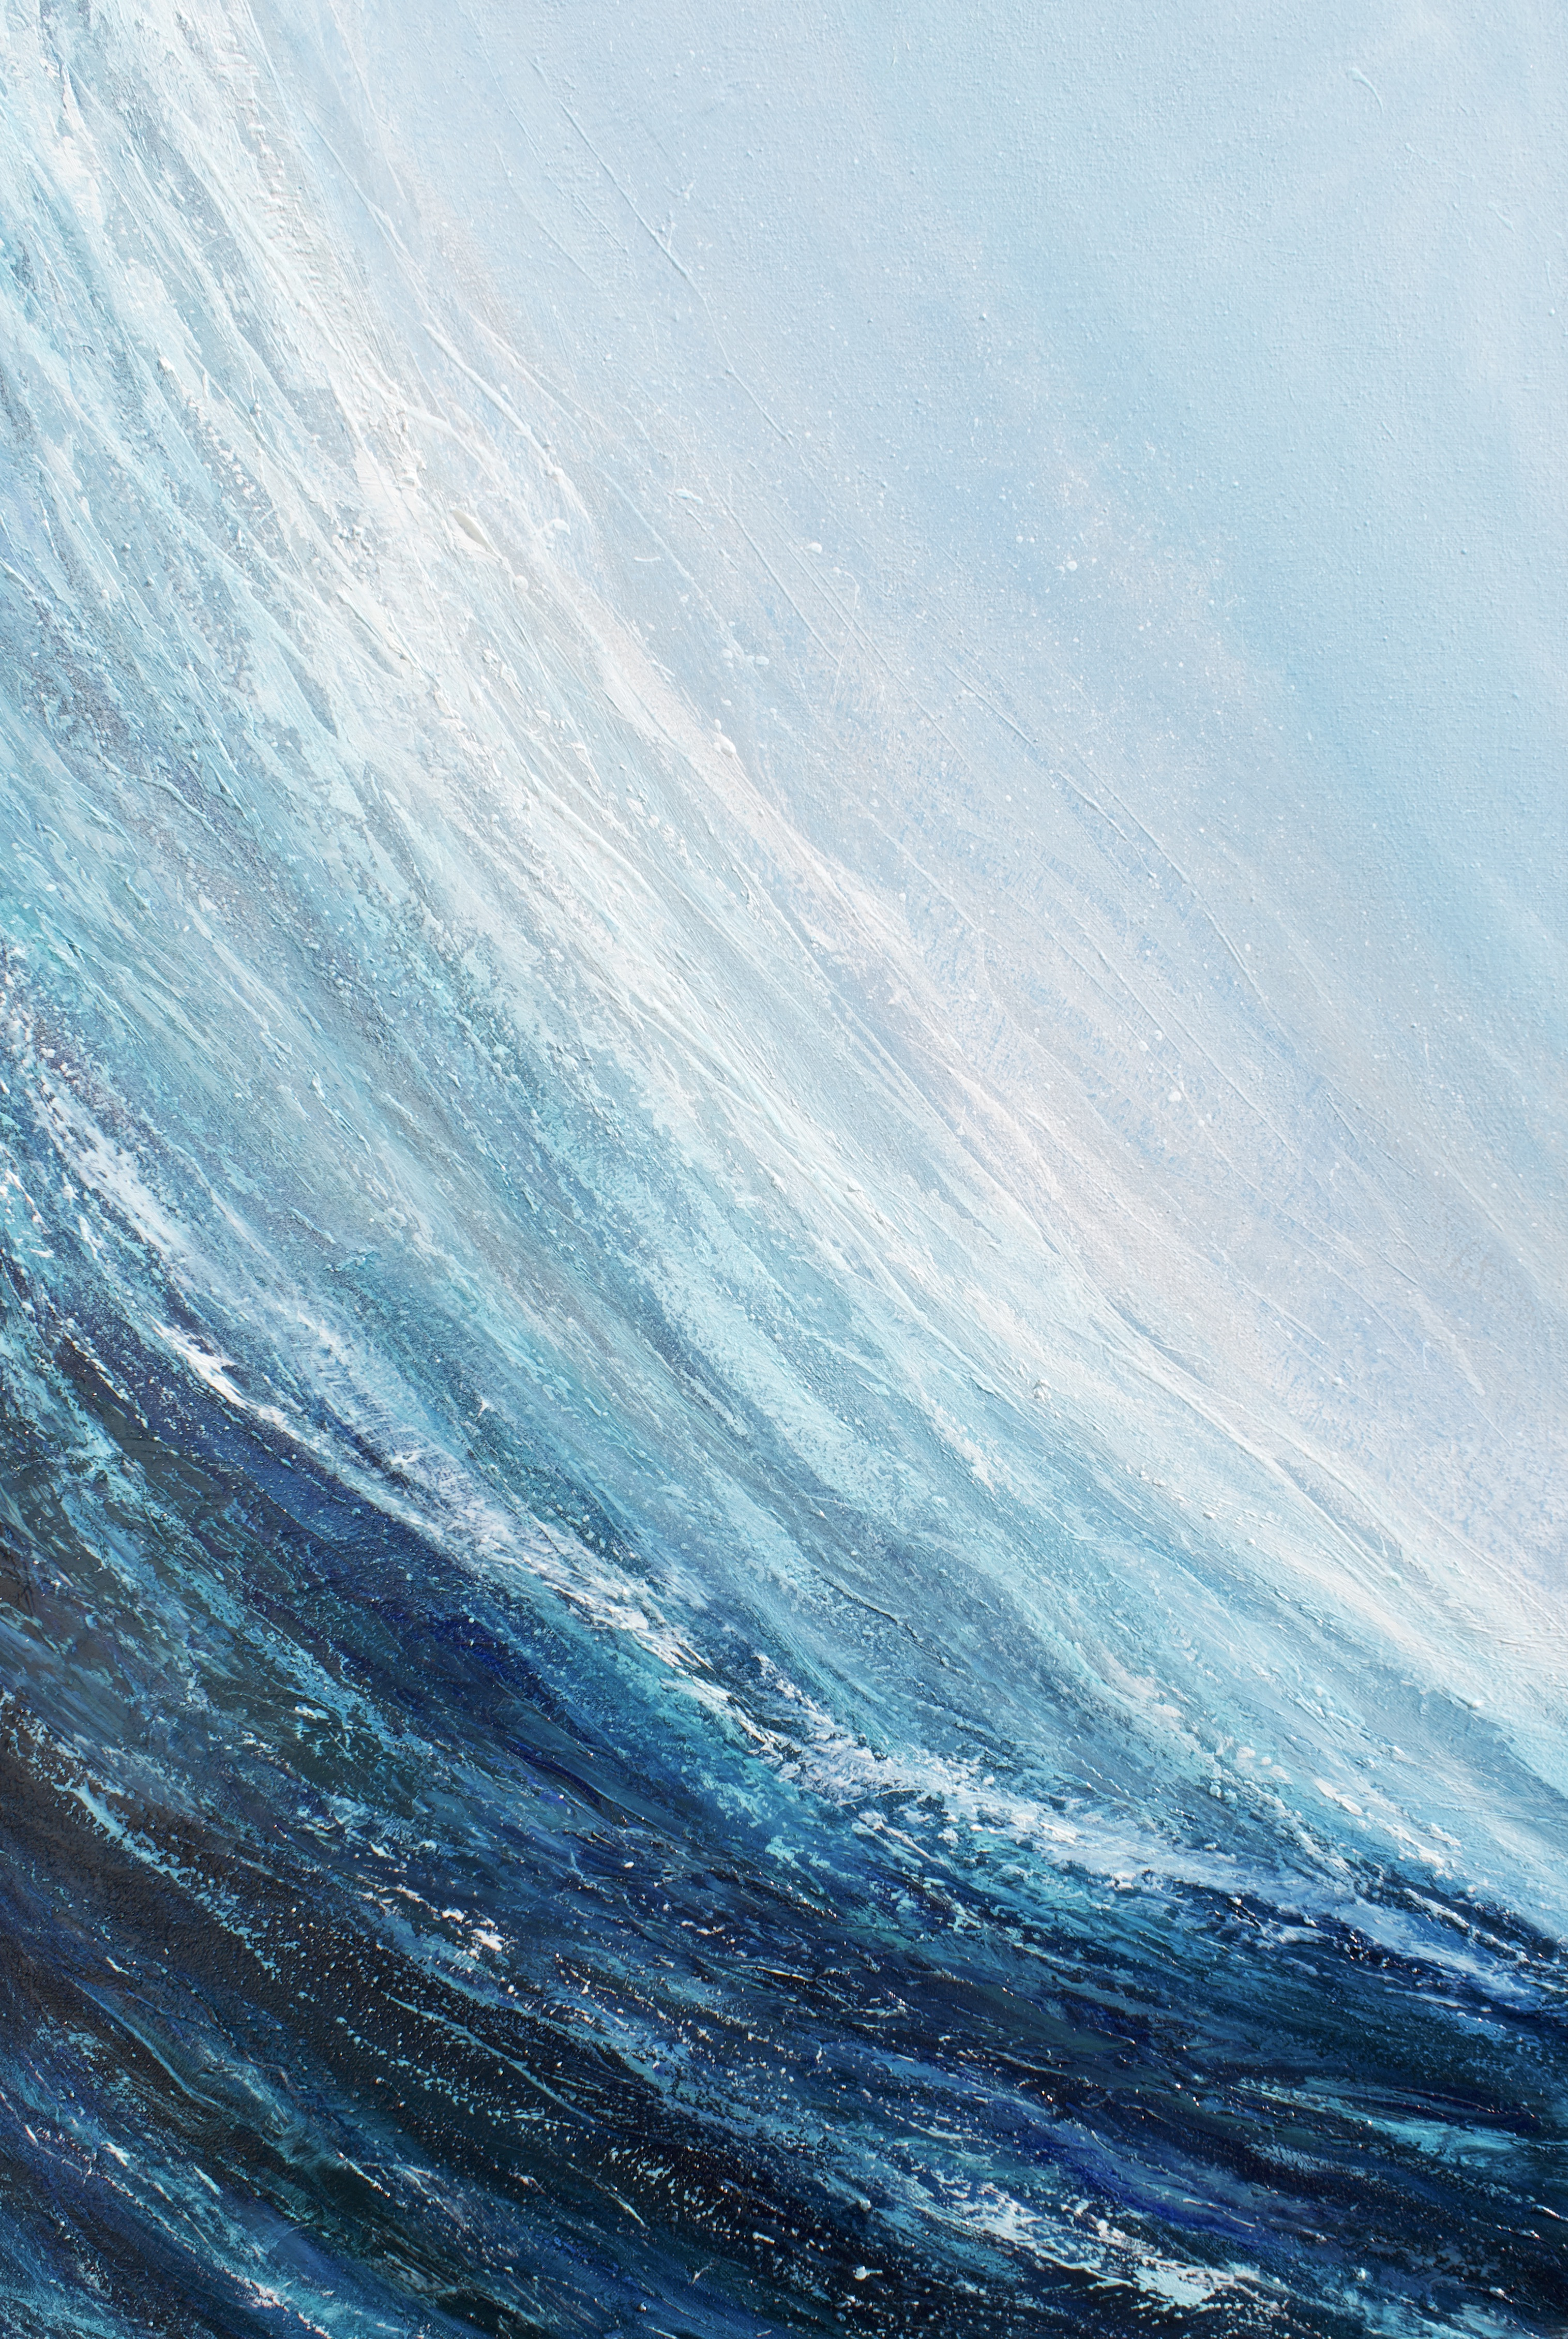 Surf the wave Original oil painting on canvas Measuring 23.5 x 35.5 inches or 60x 90 cm. Signed. Comes with a certificate of authenticity. Ready to hang. Free UK Shipping